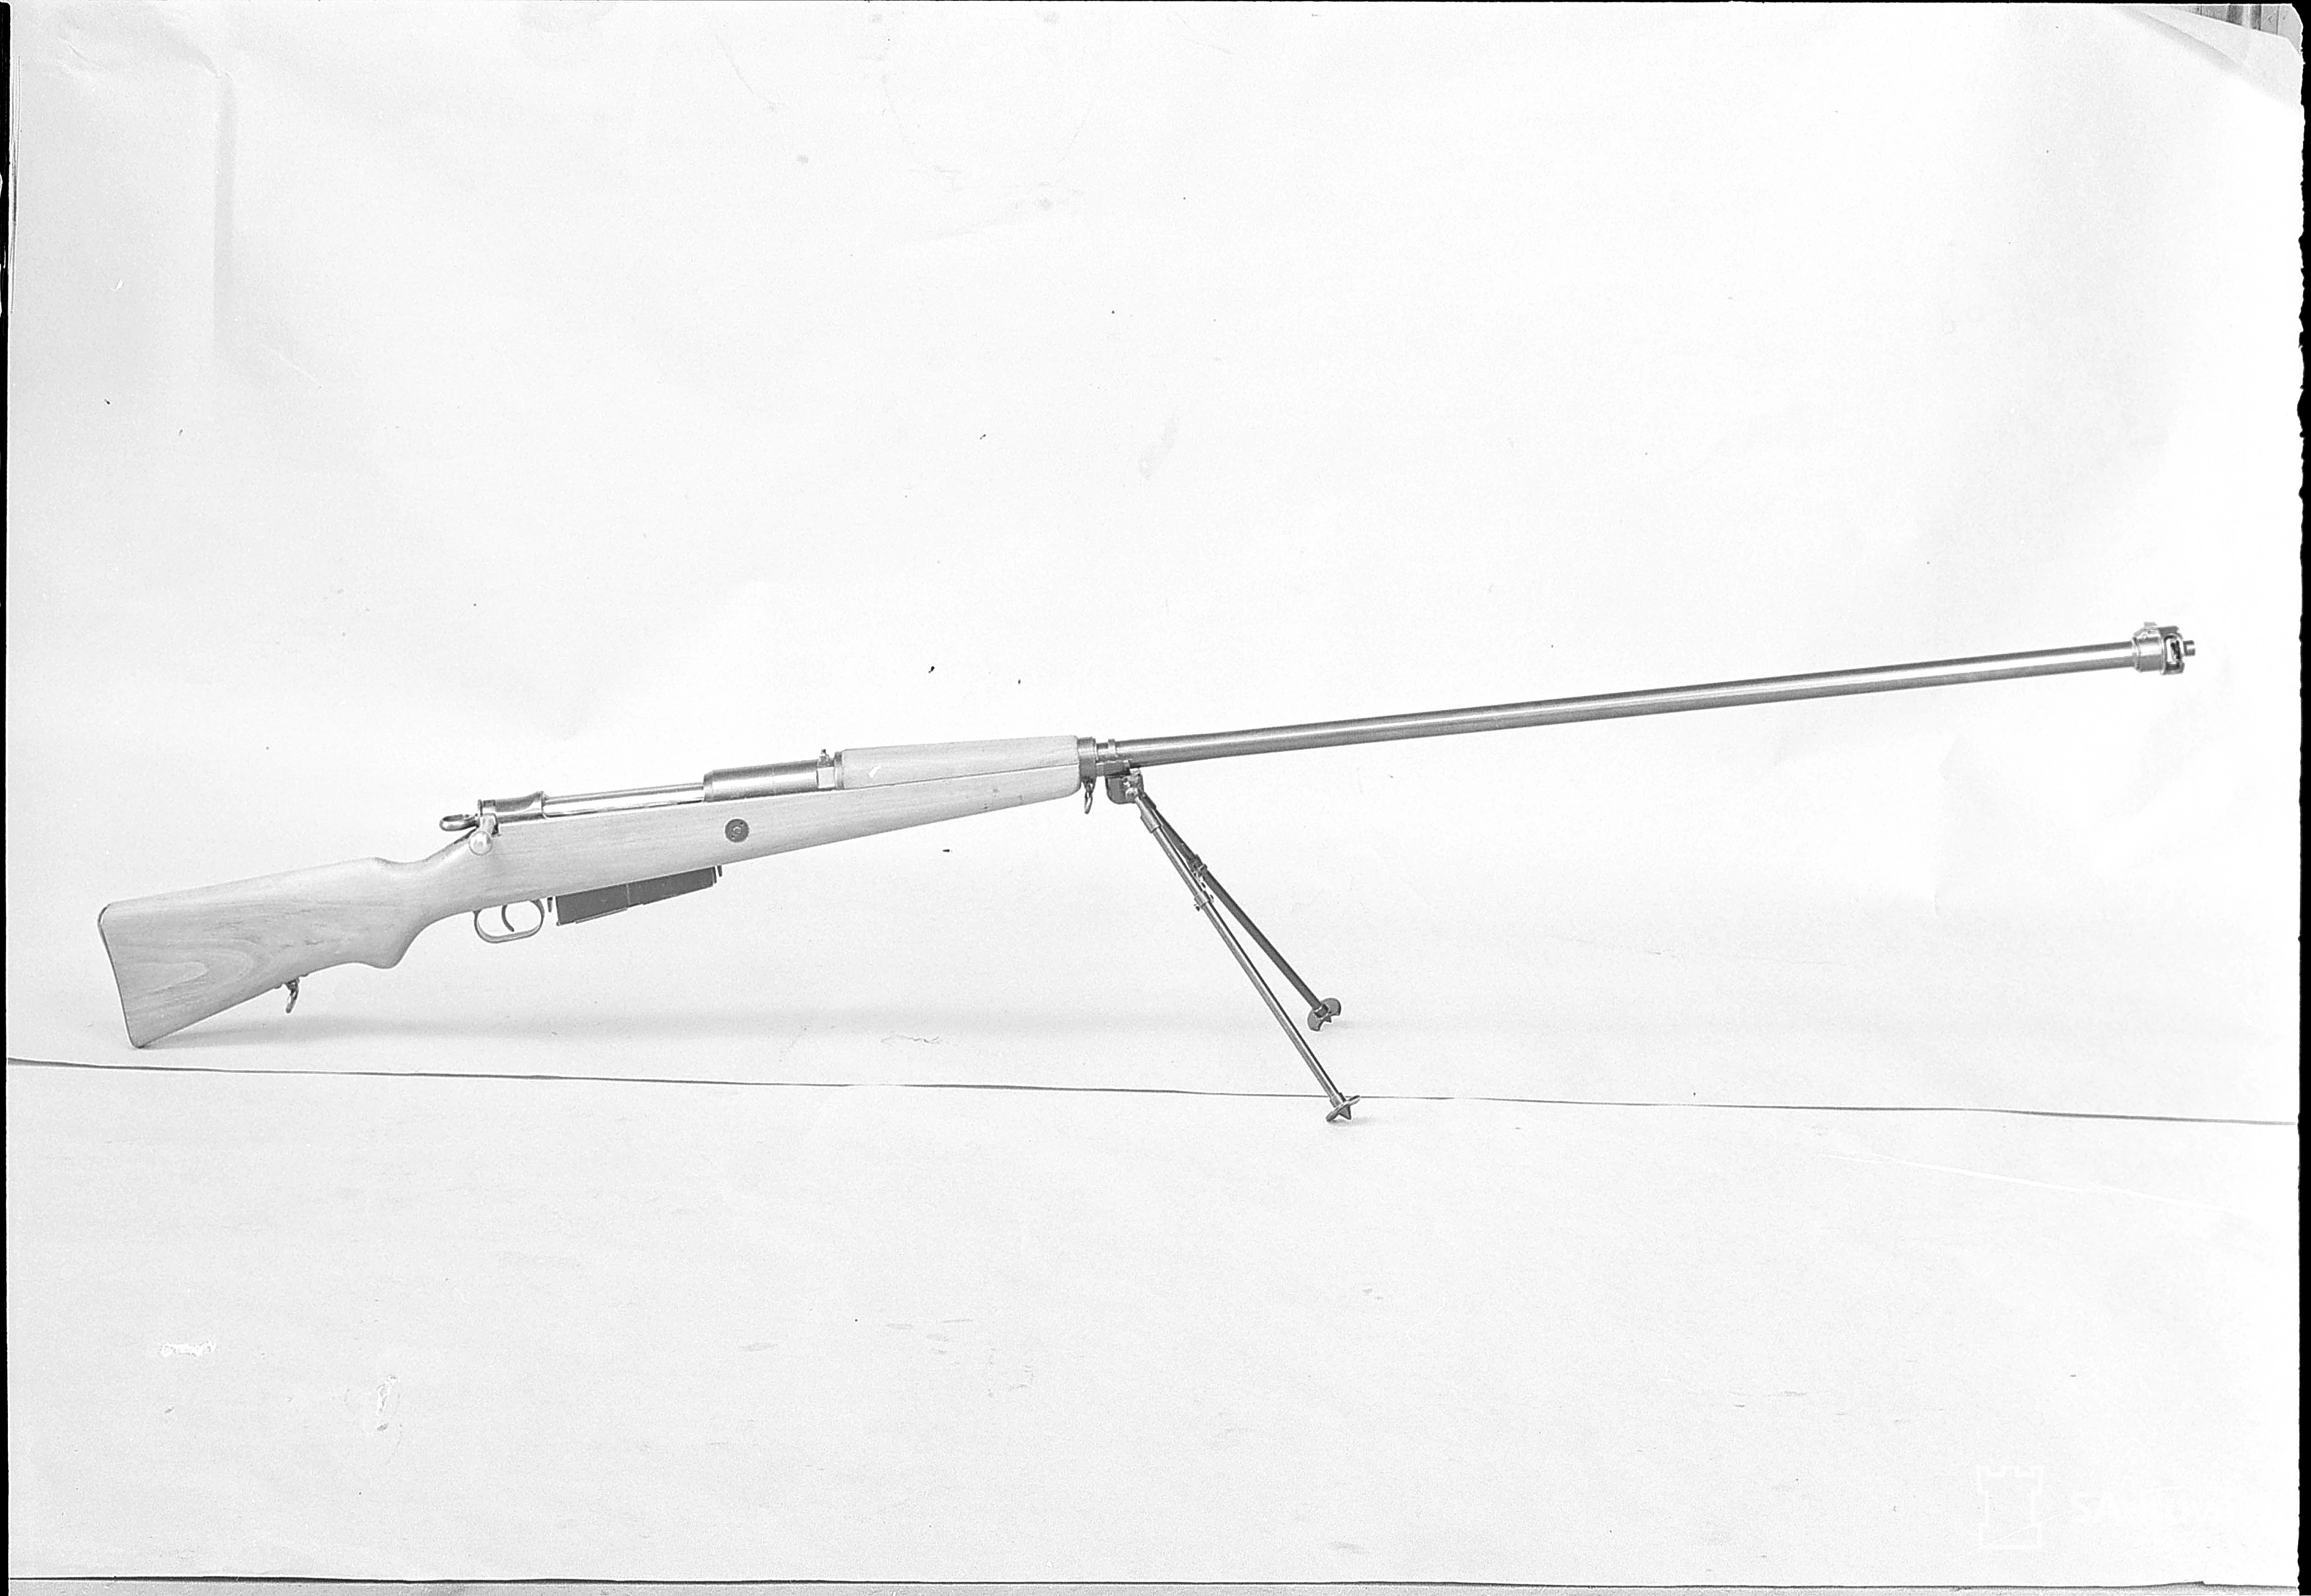 photo of 7.92mm PzB 35(p) from Wikipedia